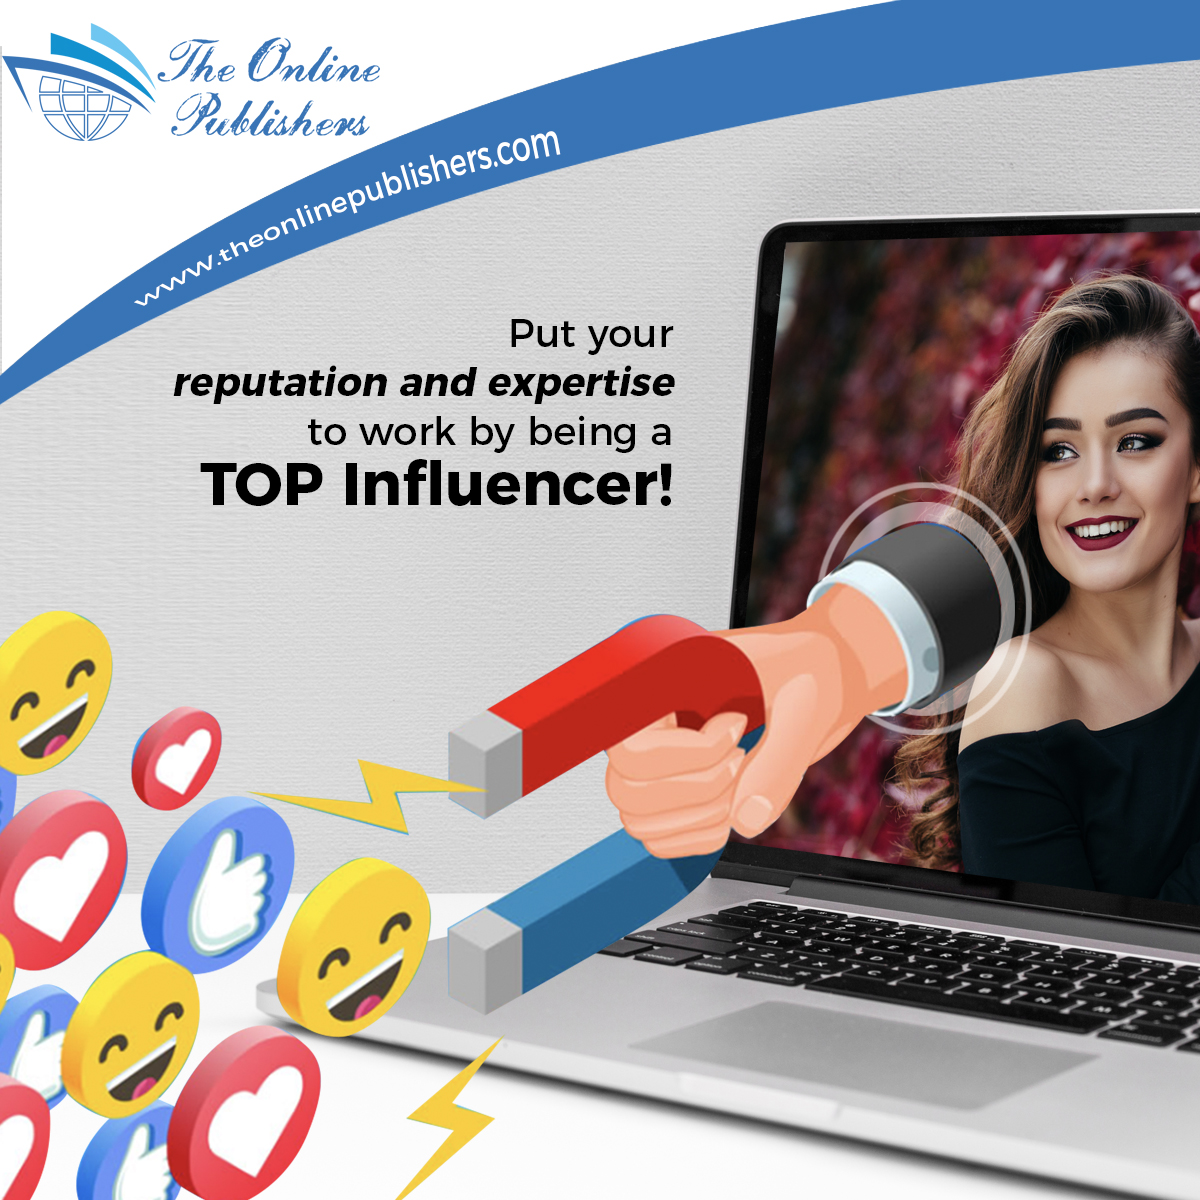 Why is Influencer Marketing Important?